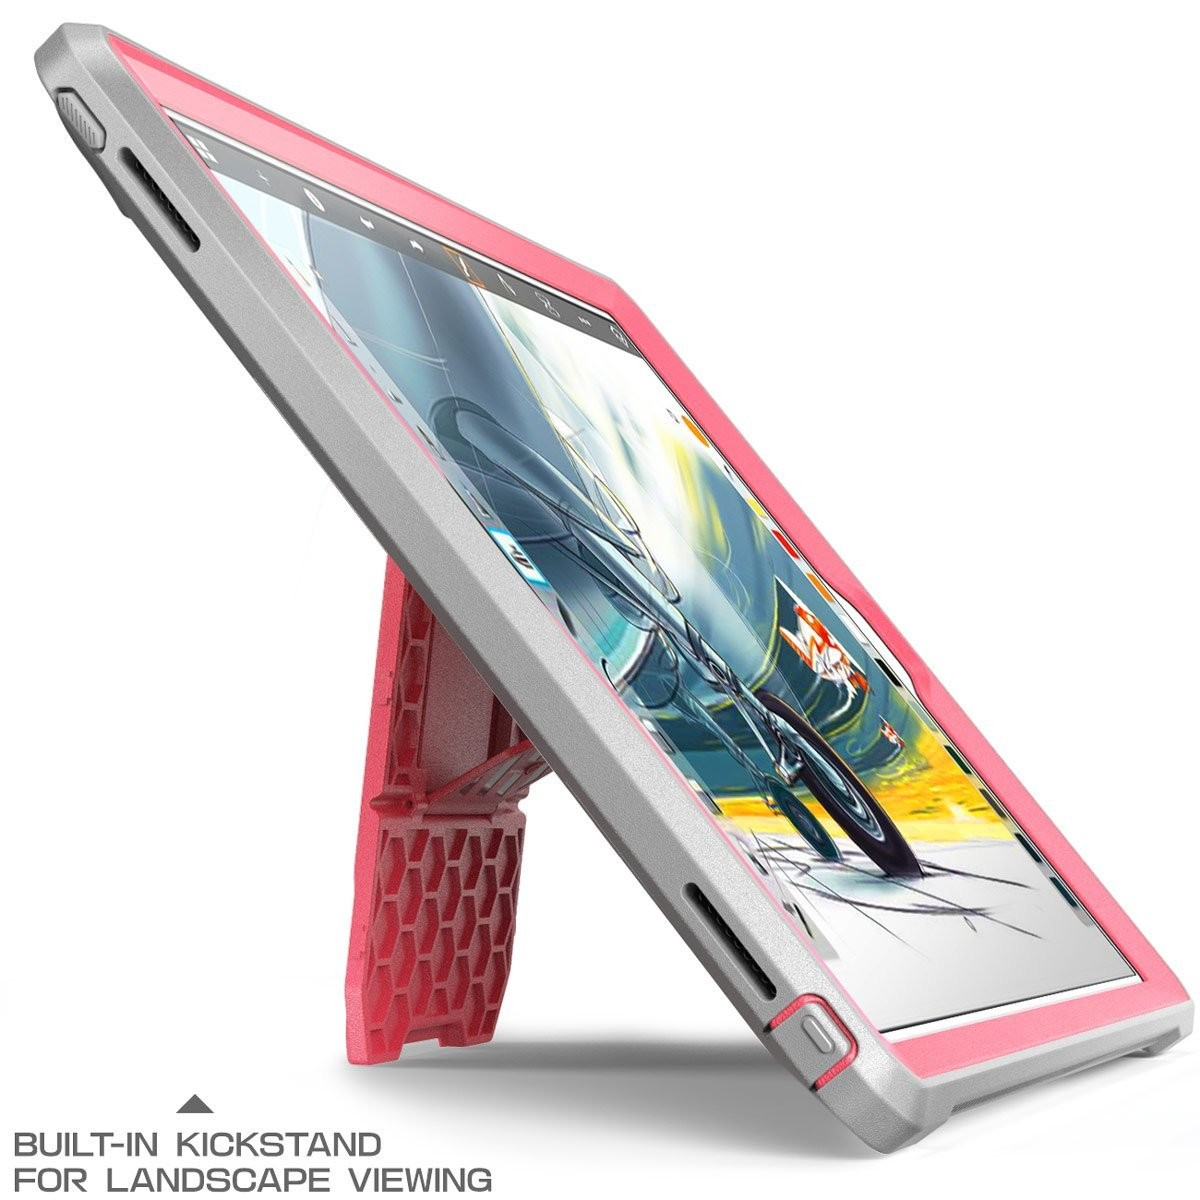 Supcase Unicorn Beetle Pro Full Body Rugged Protective Case for iPad 9.7 (2017) - Pink/Gray, B06XWS4L7K